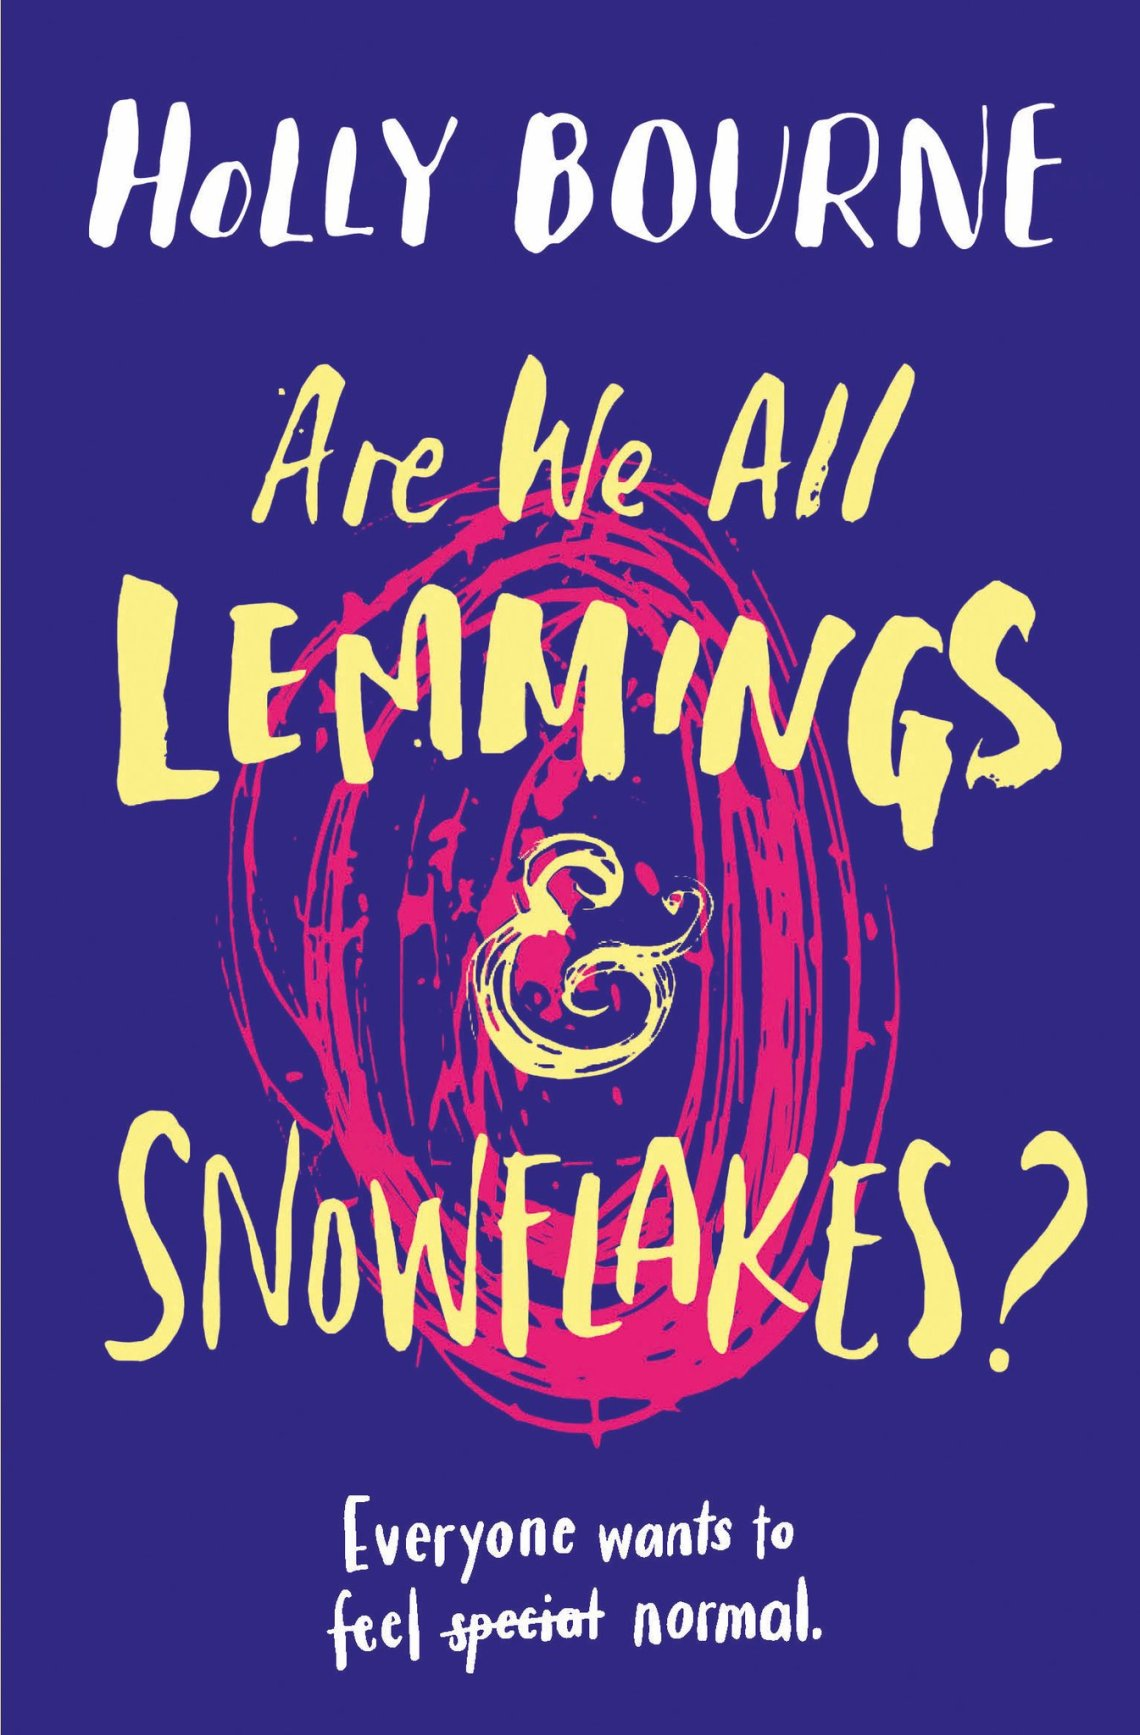 Are-We-All-Lemmings-and-Snowflakes-by-Holly-Bourne.jpg